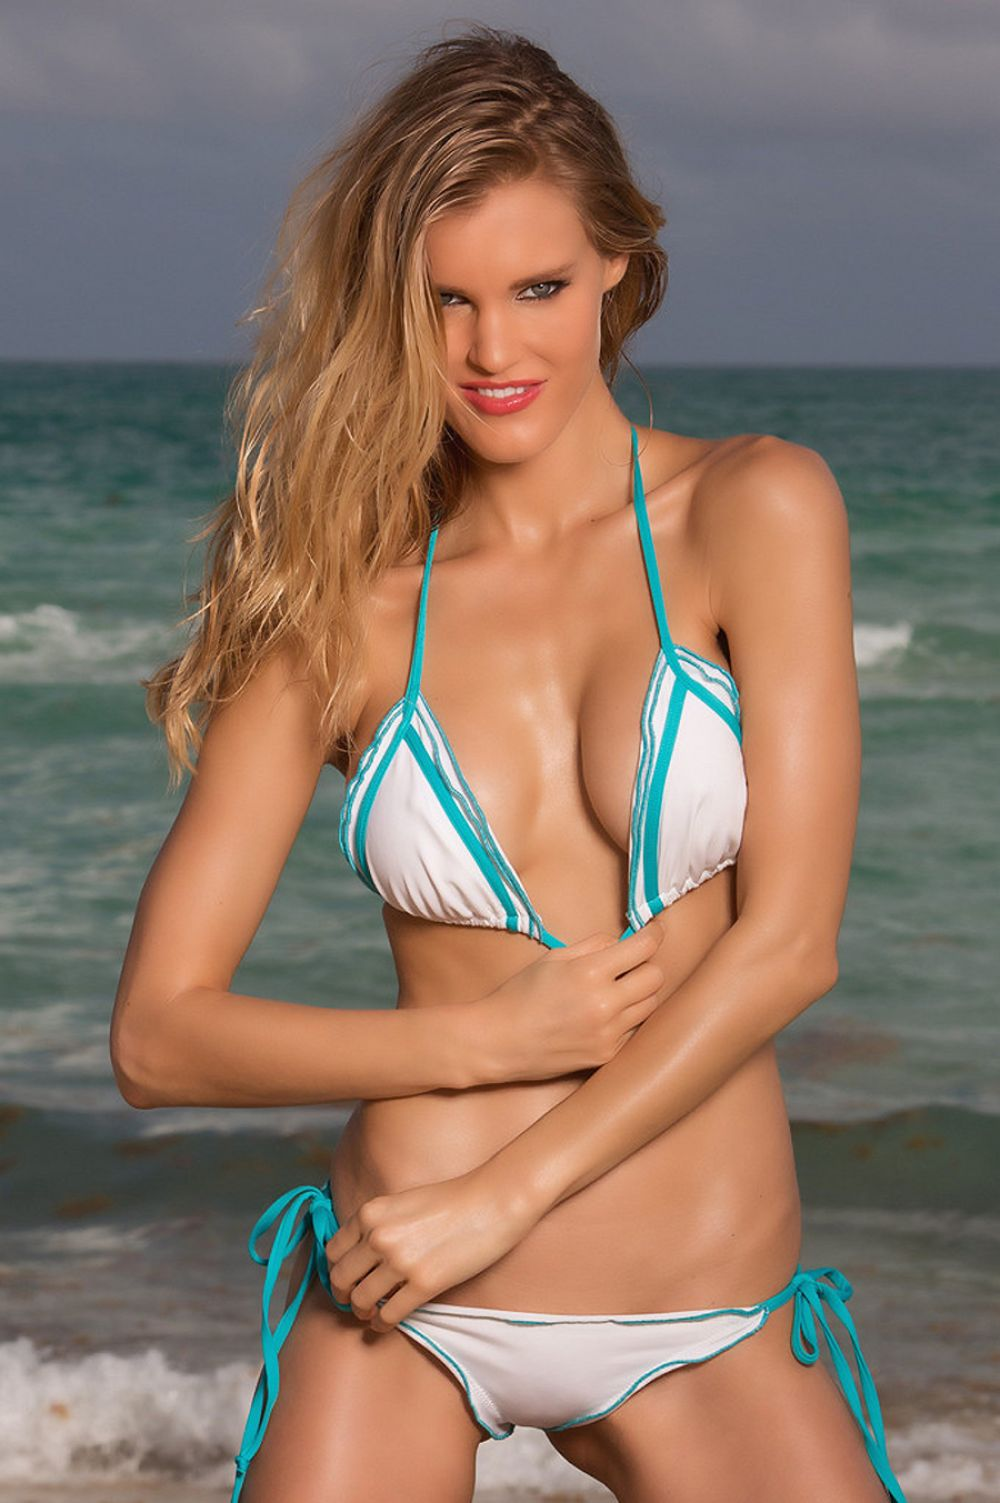 joy-corringan-summerlove-swimwear-2014-collection_11.jpg - 141.39 KB